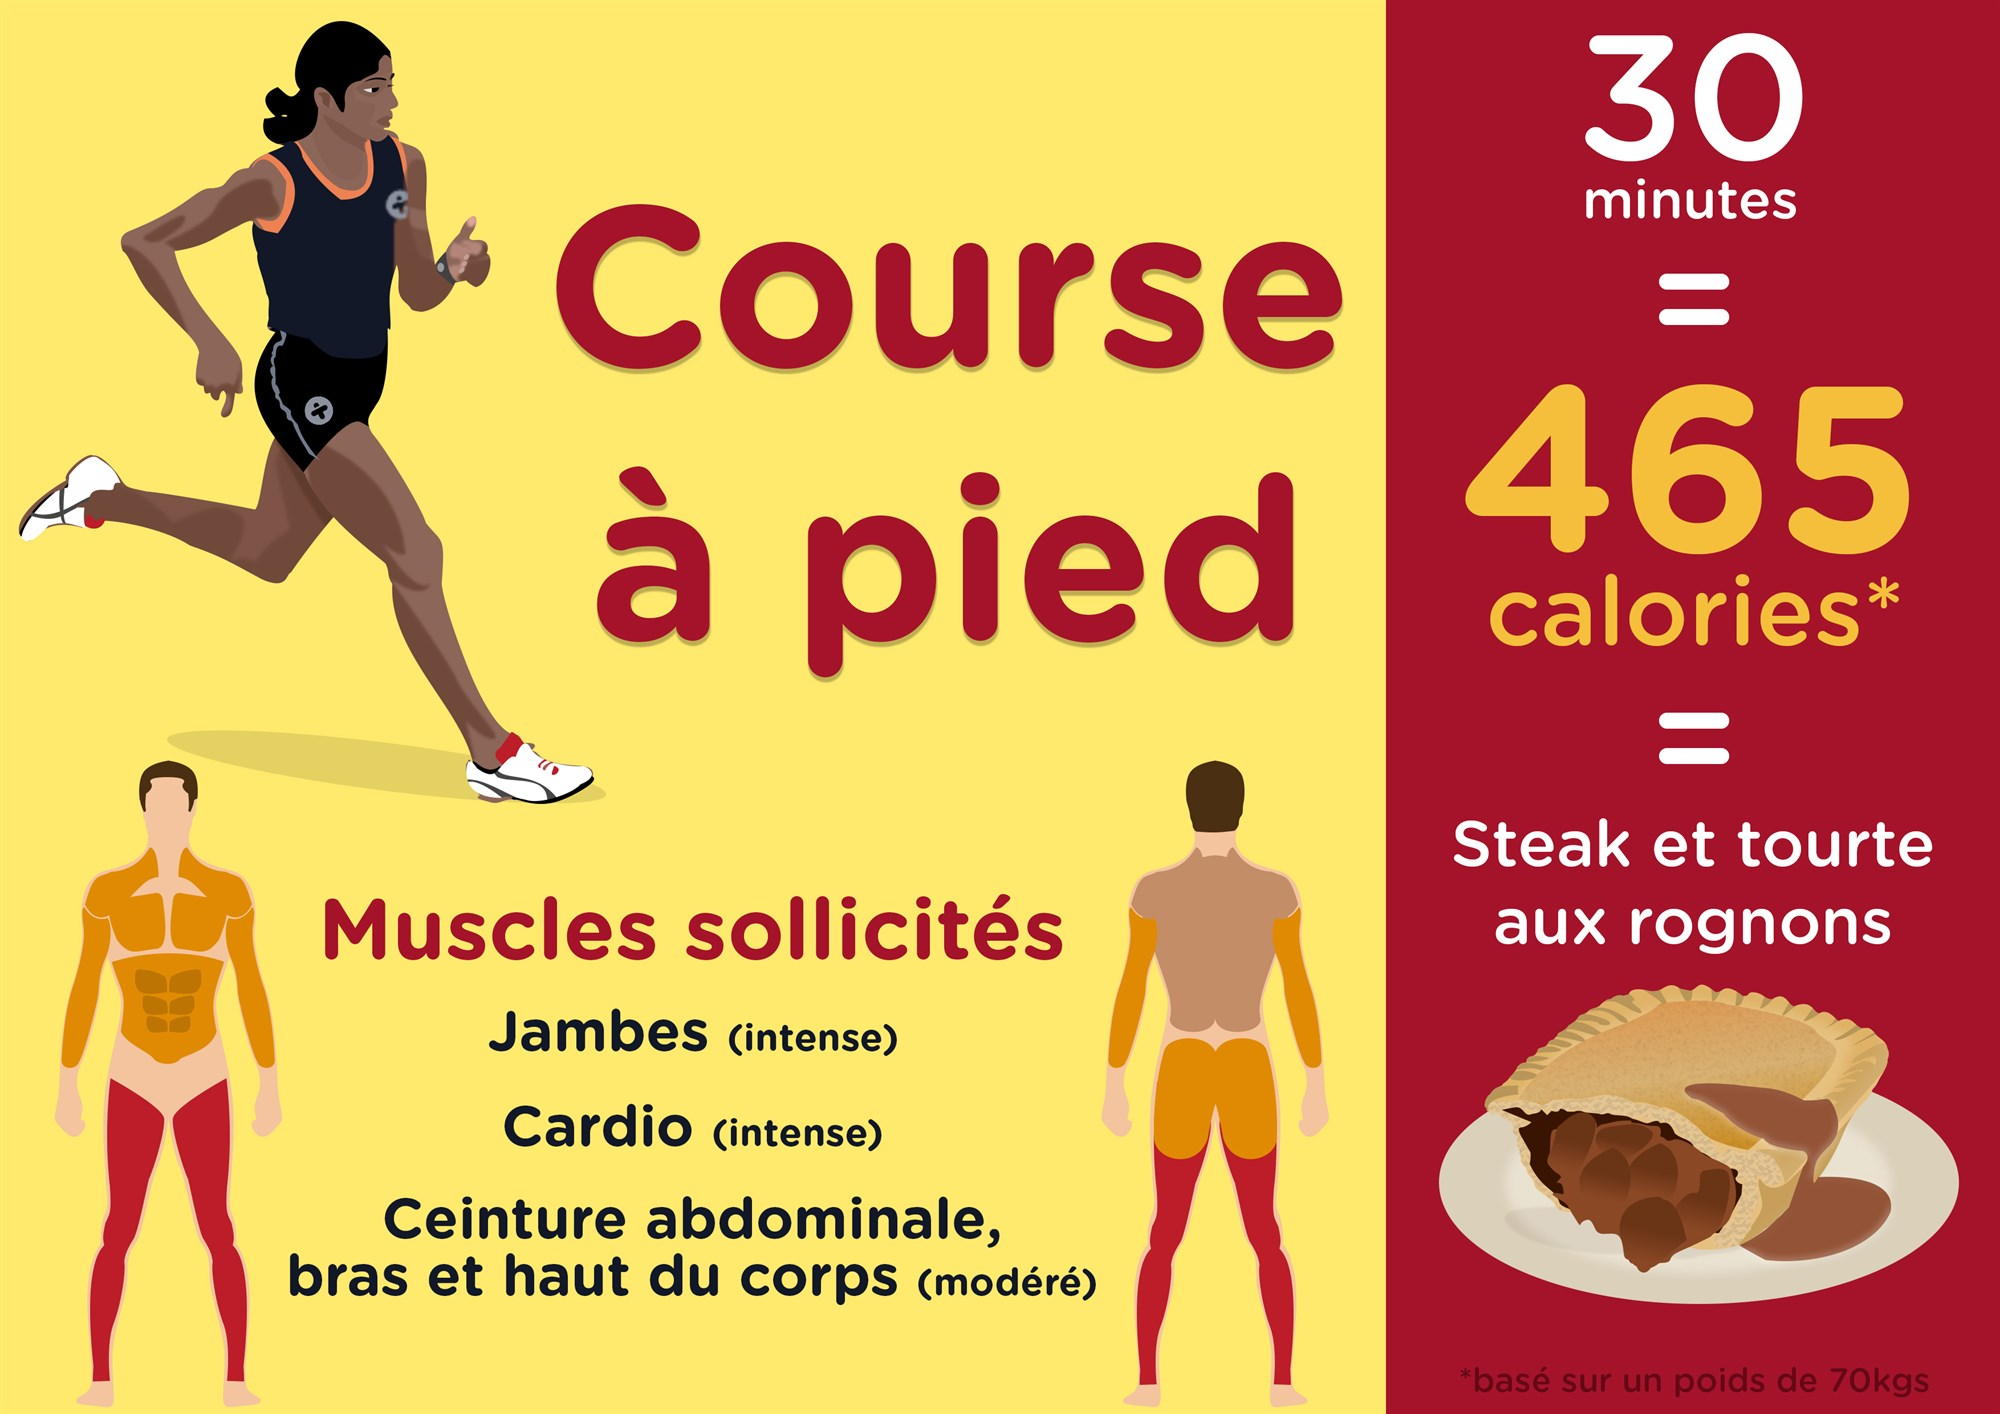 calories course à pied